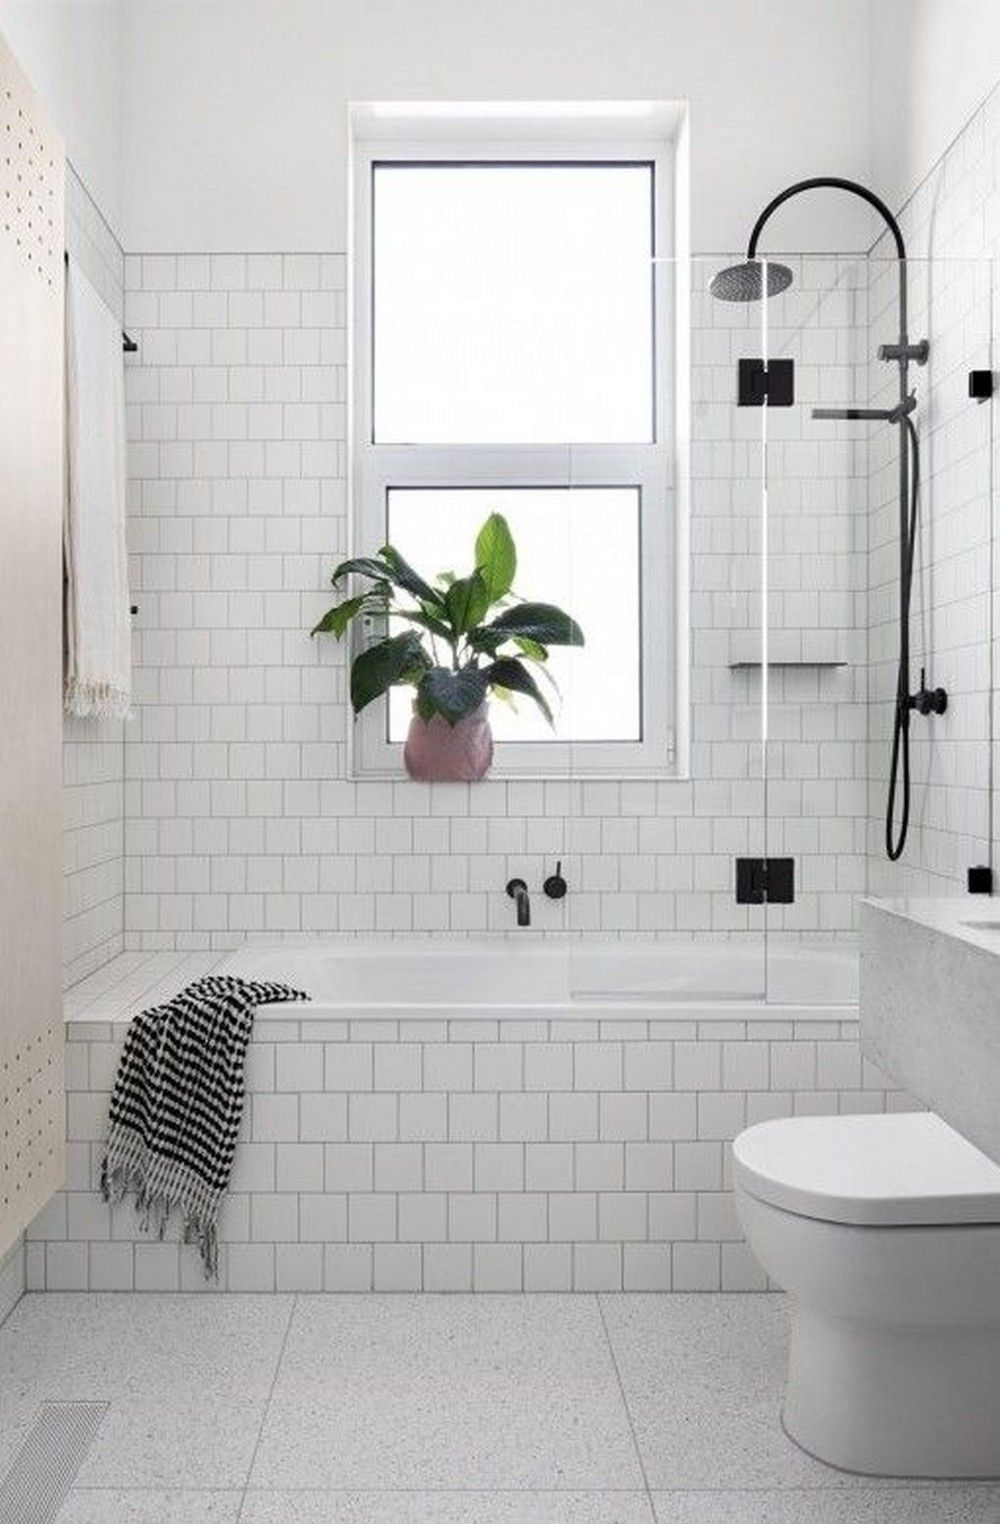 28 Design Tips to Make a Small Bathroom Better | Small bathroom, Big ...